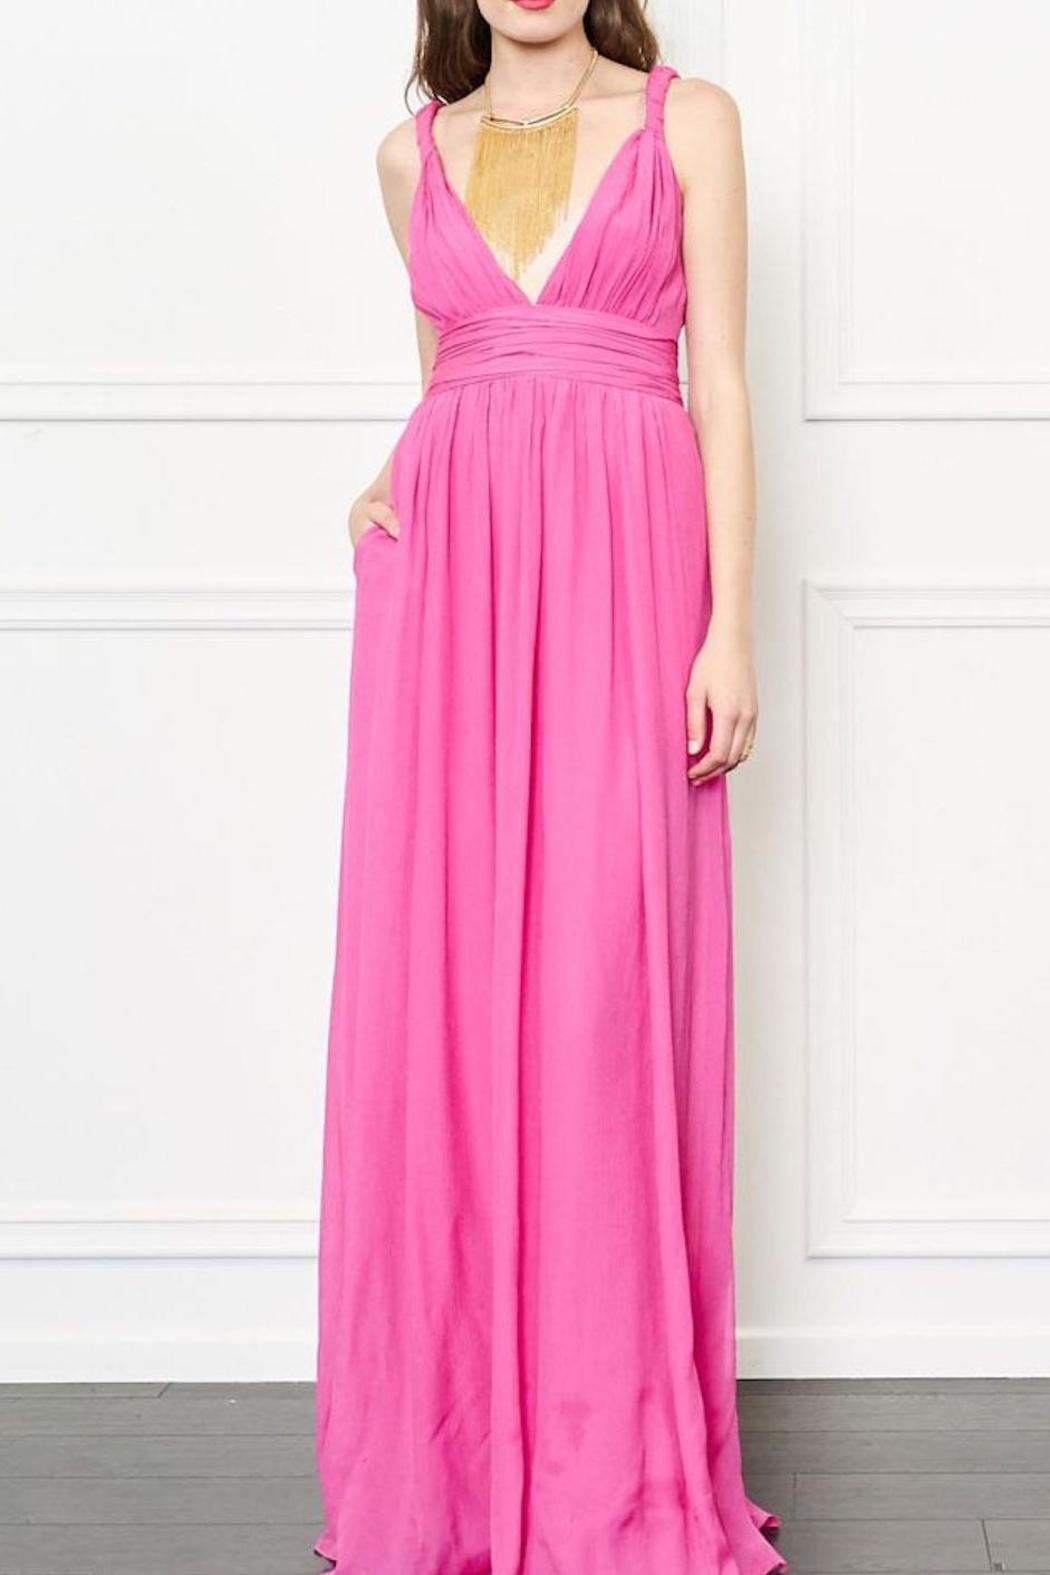 Rachel Zoe Pink Silk Dress - Front Cropped Image